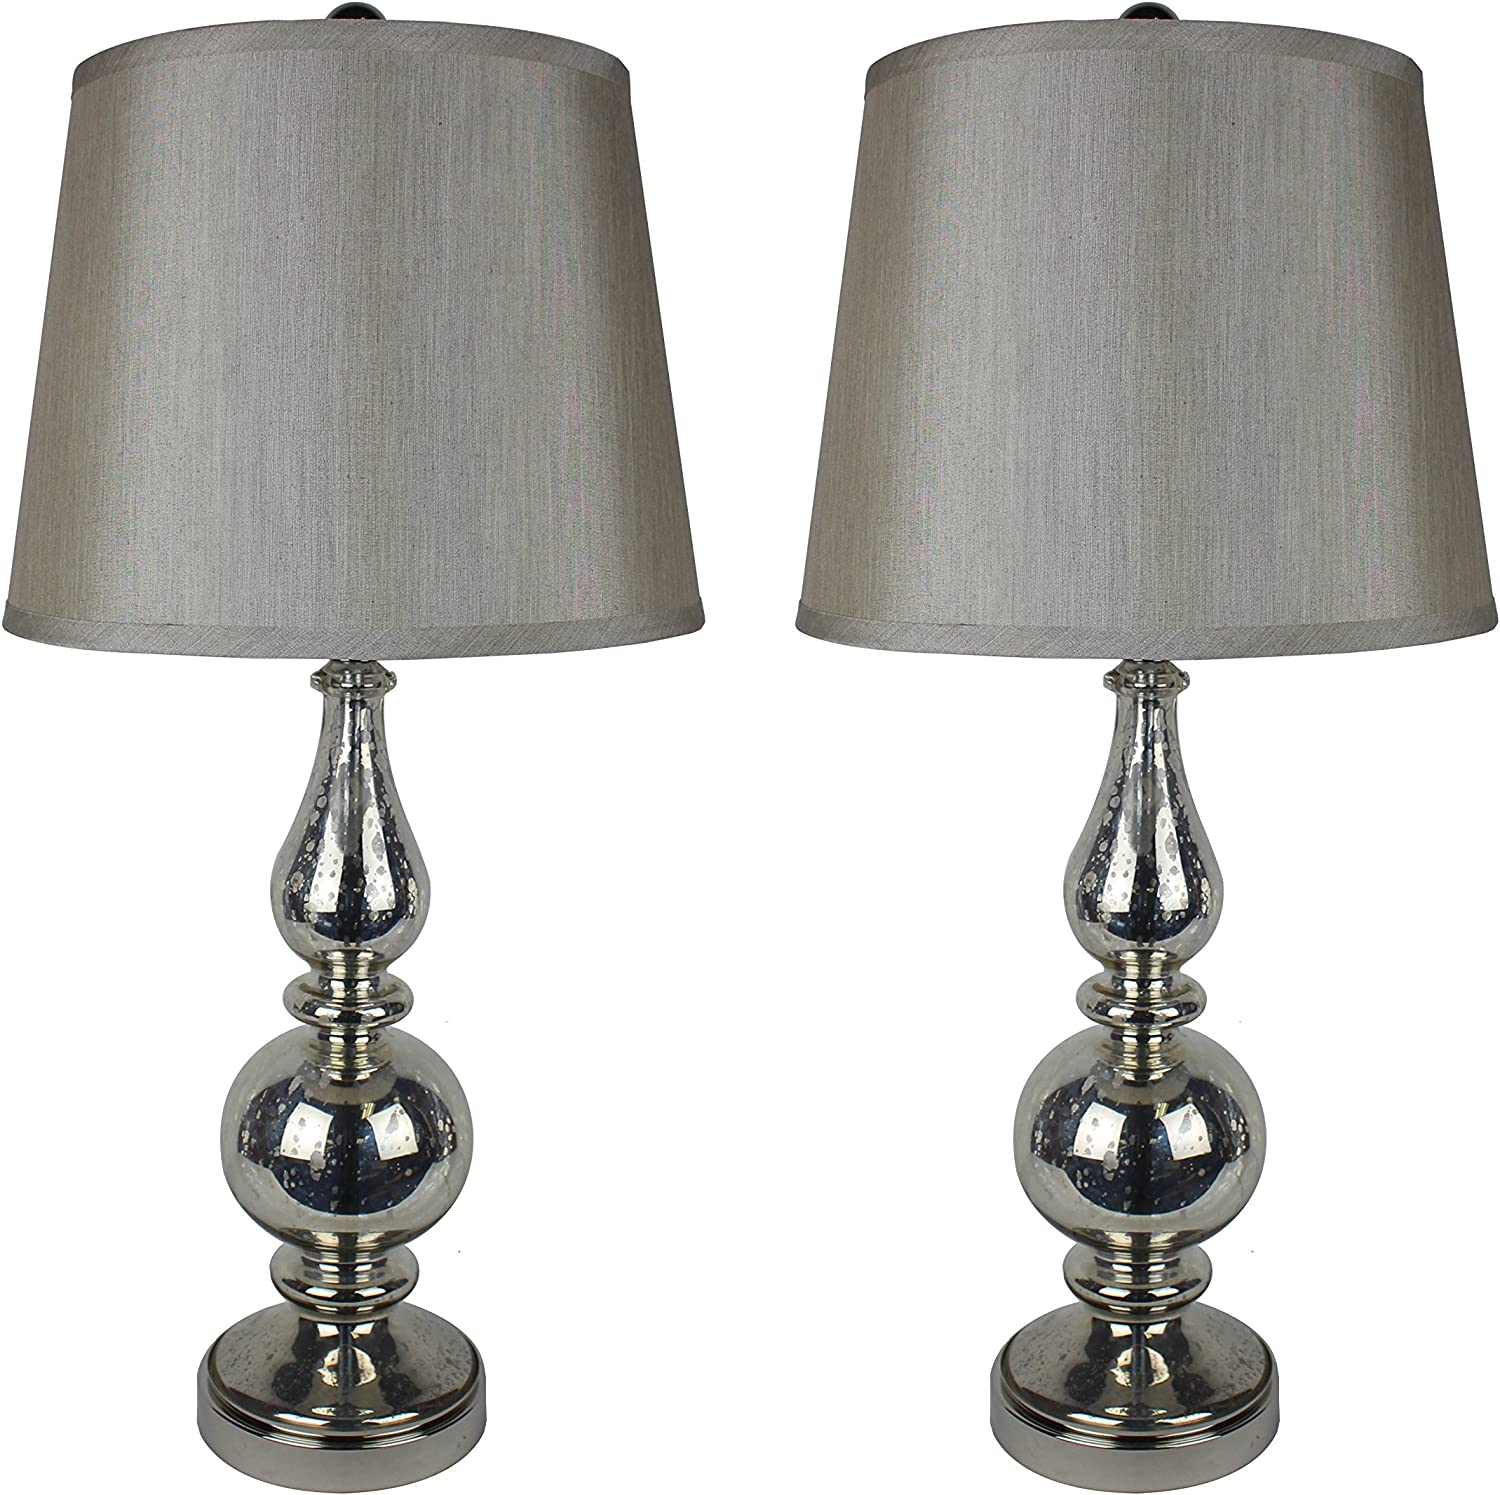 Urbanest Set of 2 Andelain Table Lamps in Antique Silver Glass with Champagne Silk Shades Antique Silver With Champagne Shades